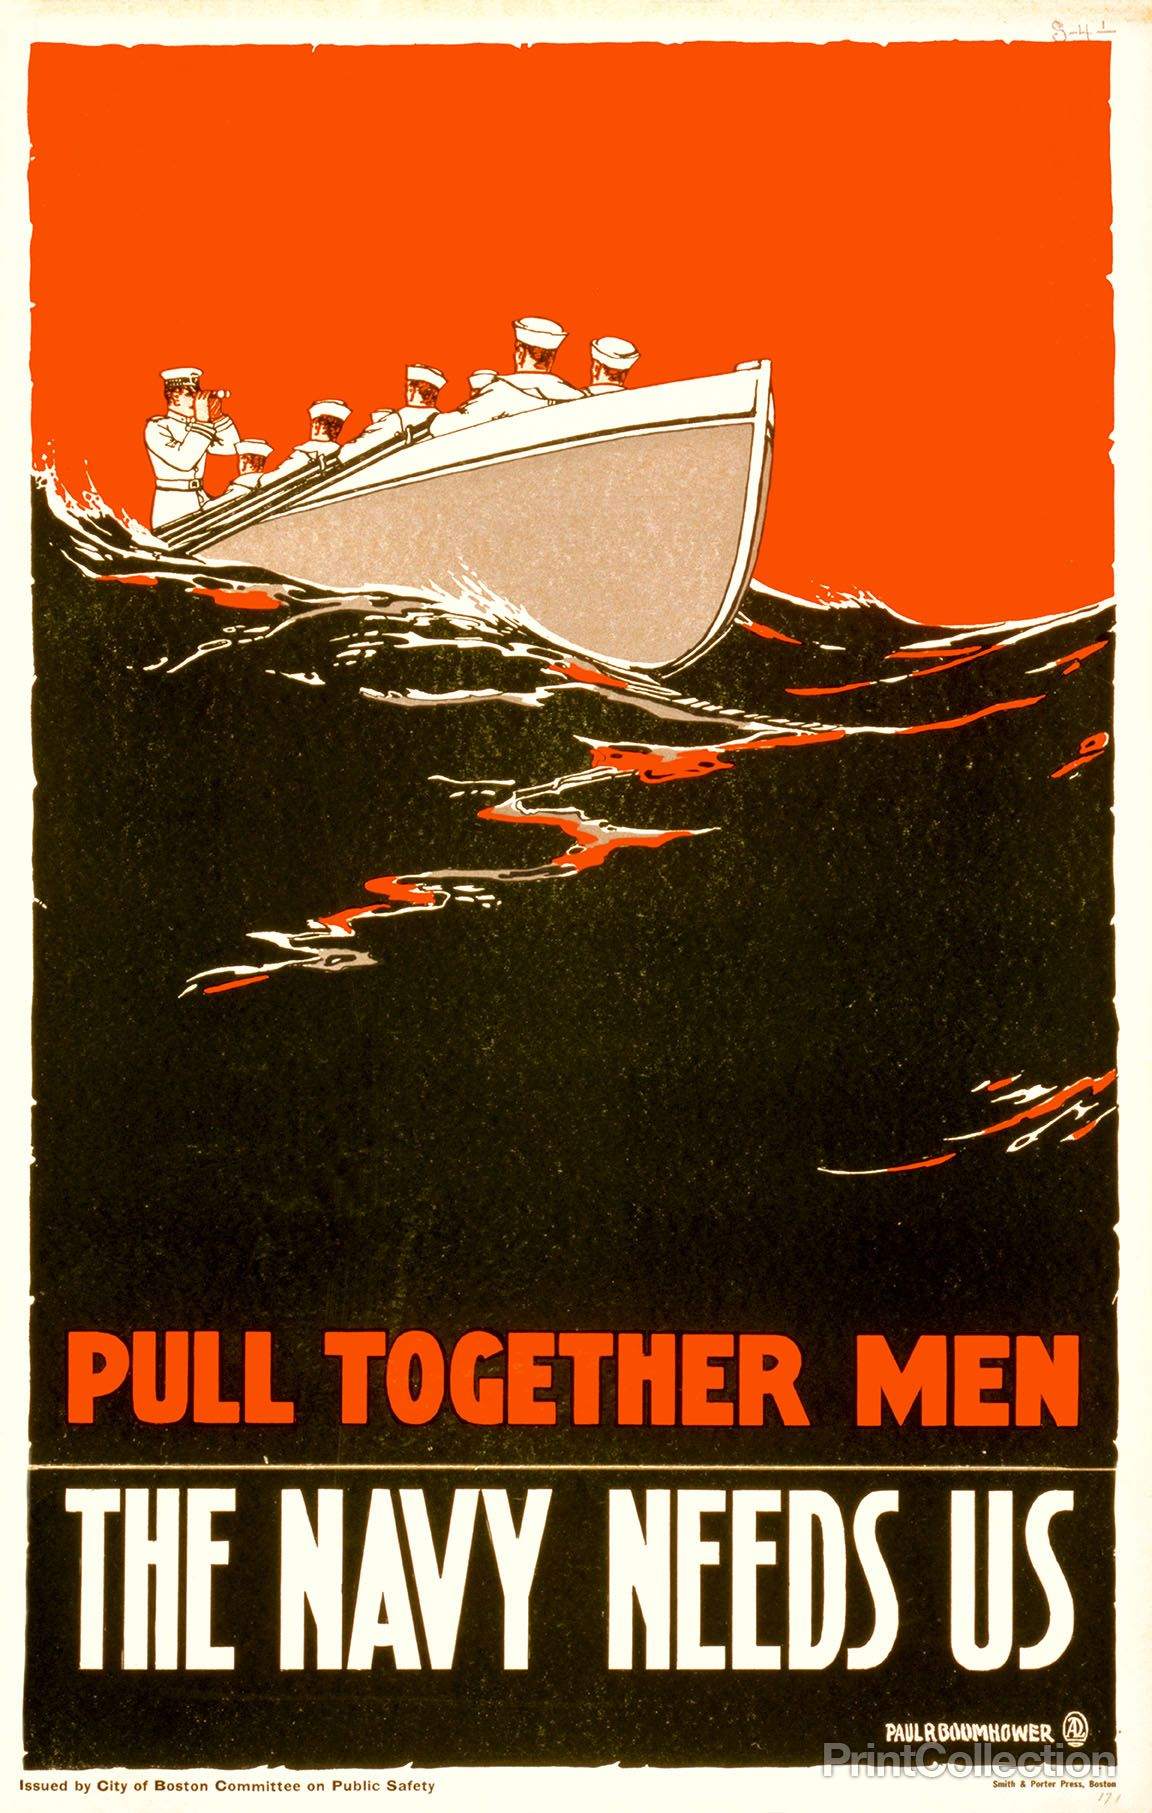 2 color poster design - Poster Created By Paul Boomhower In 1917 Showing Sailors Rowing A Boat For World War I Originally It Was As A Color